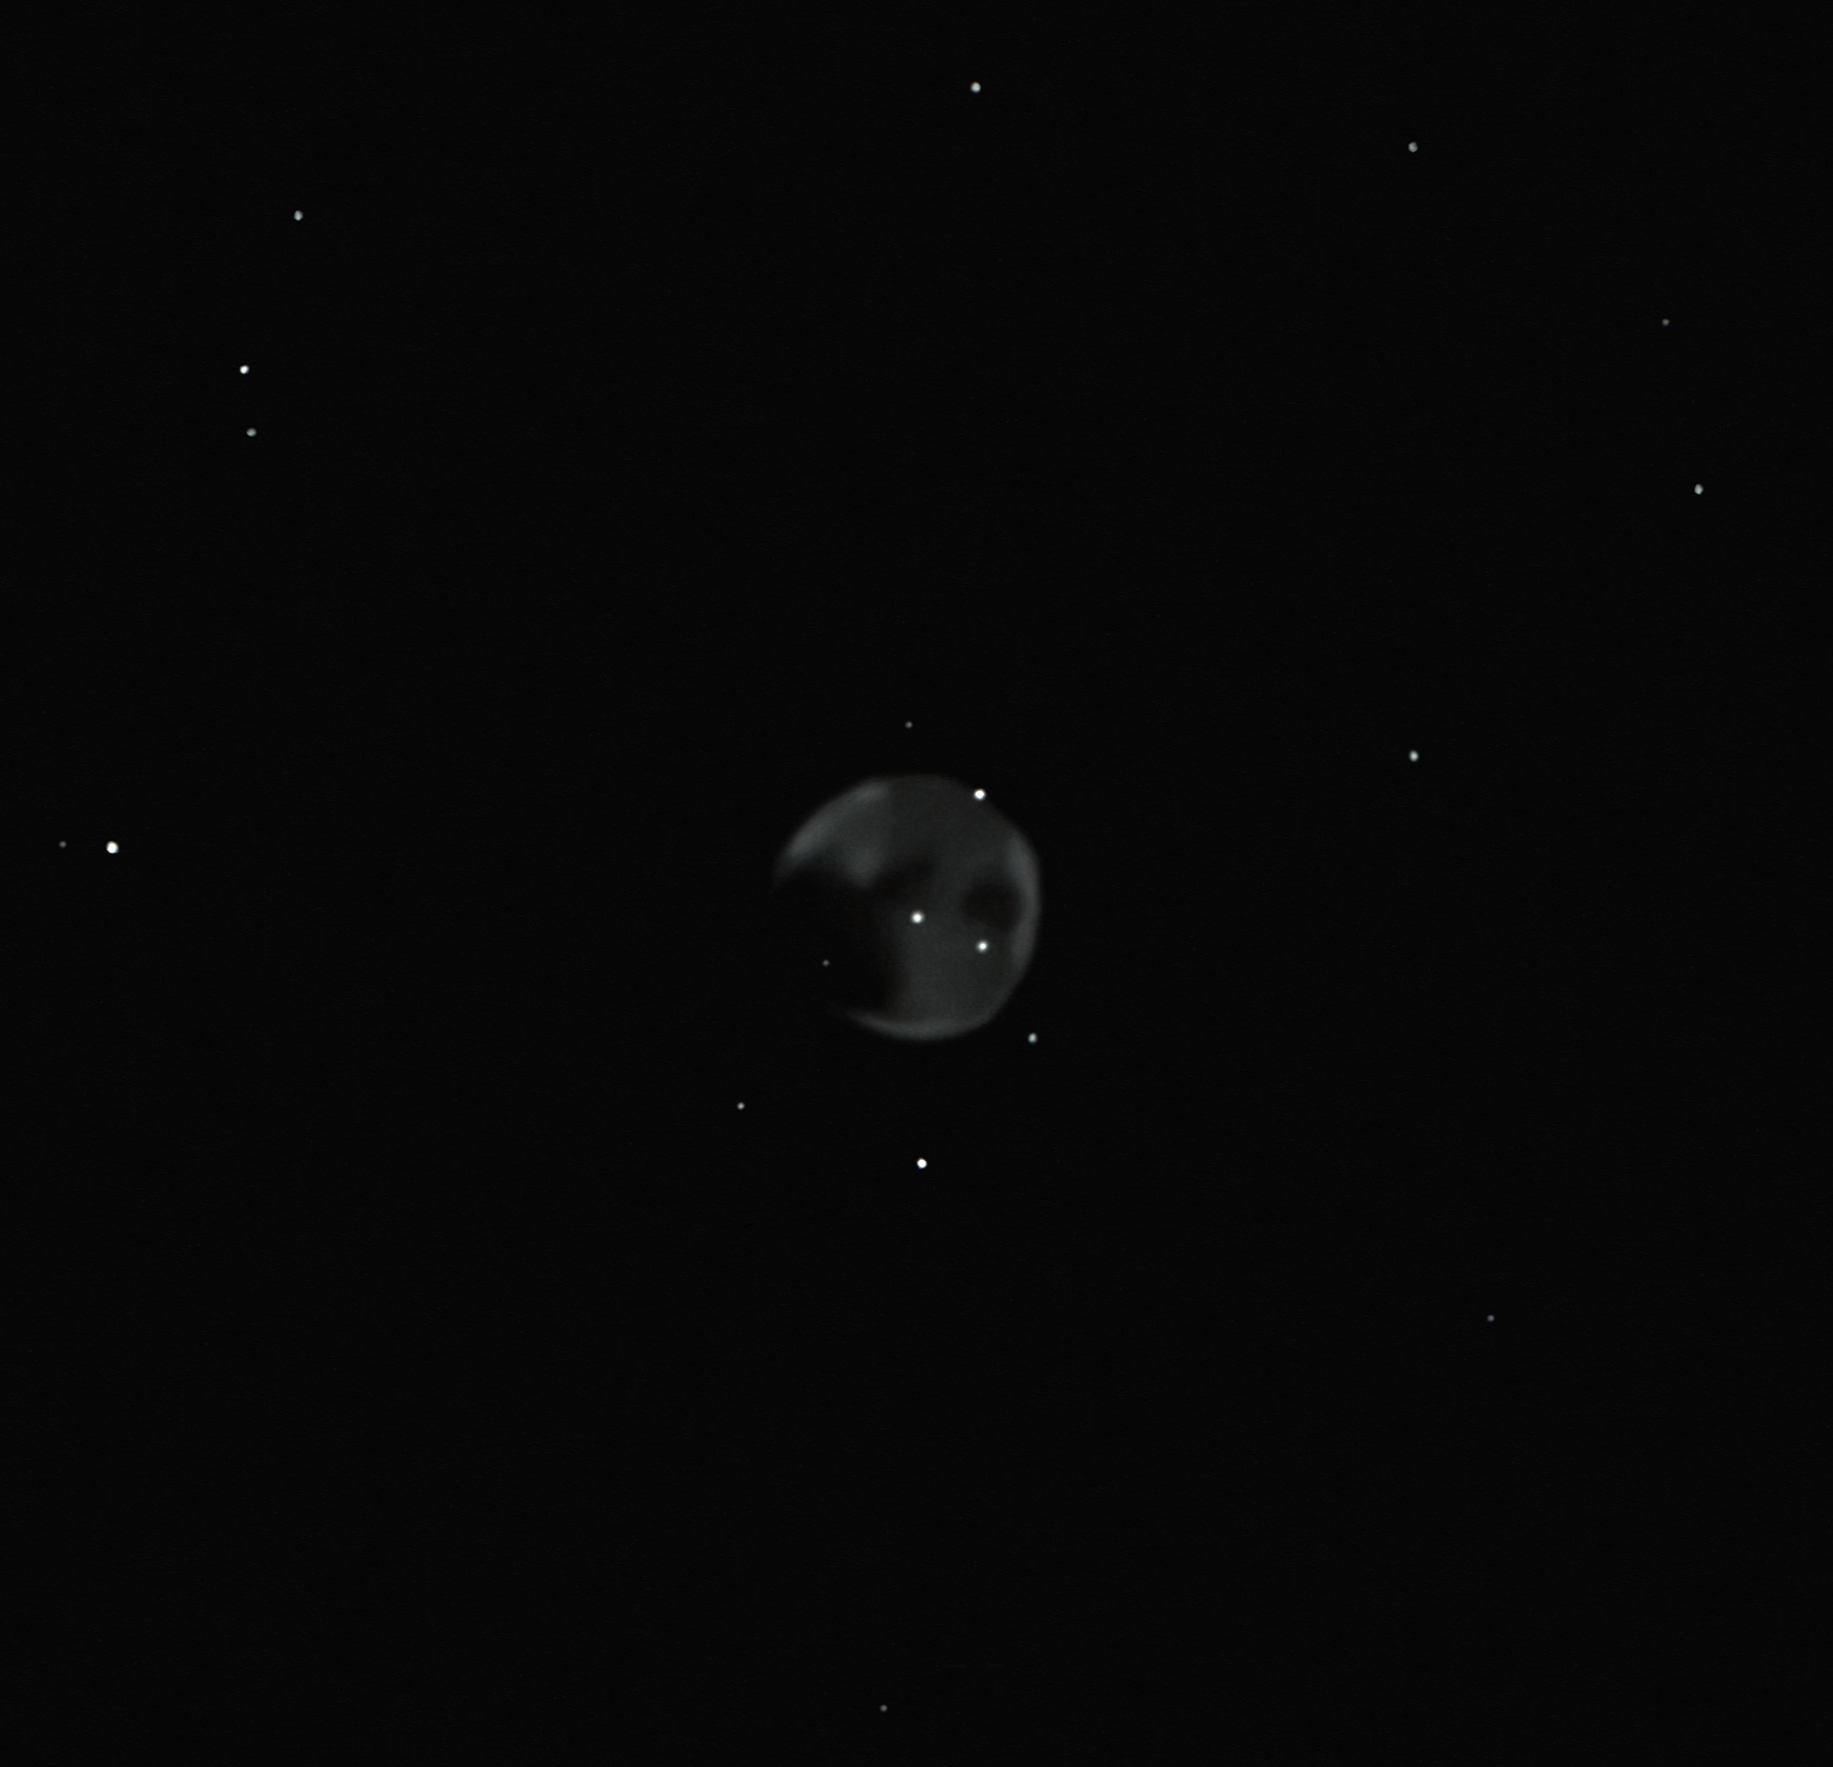 ngc0246-T381-md3.png